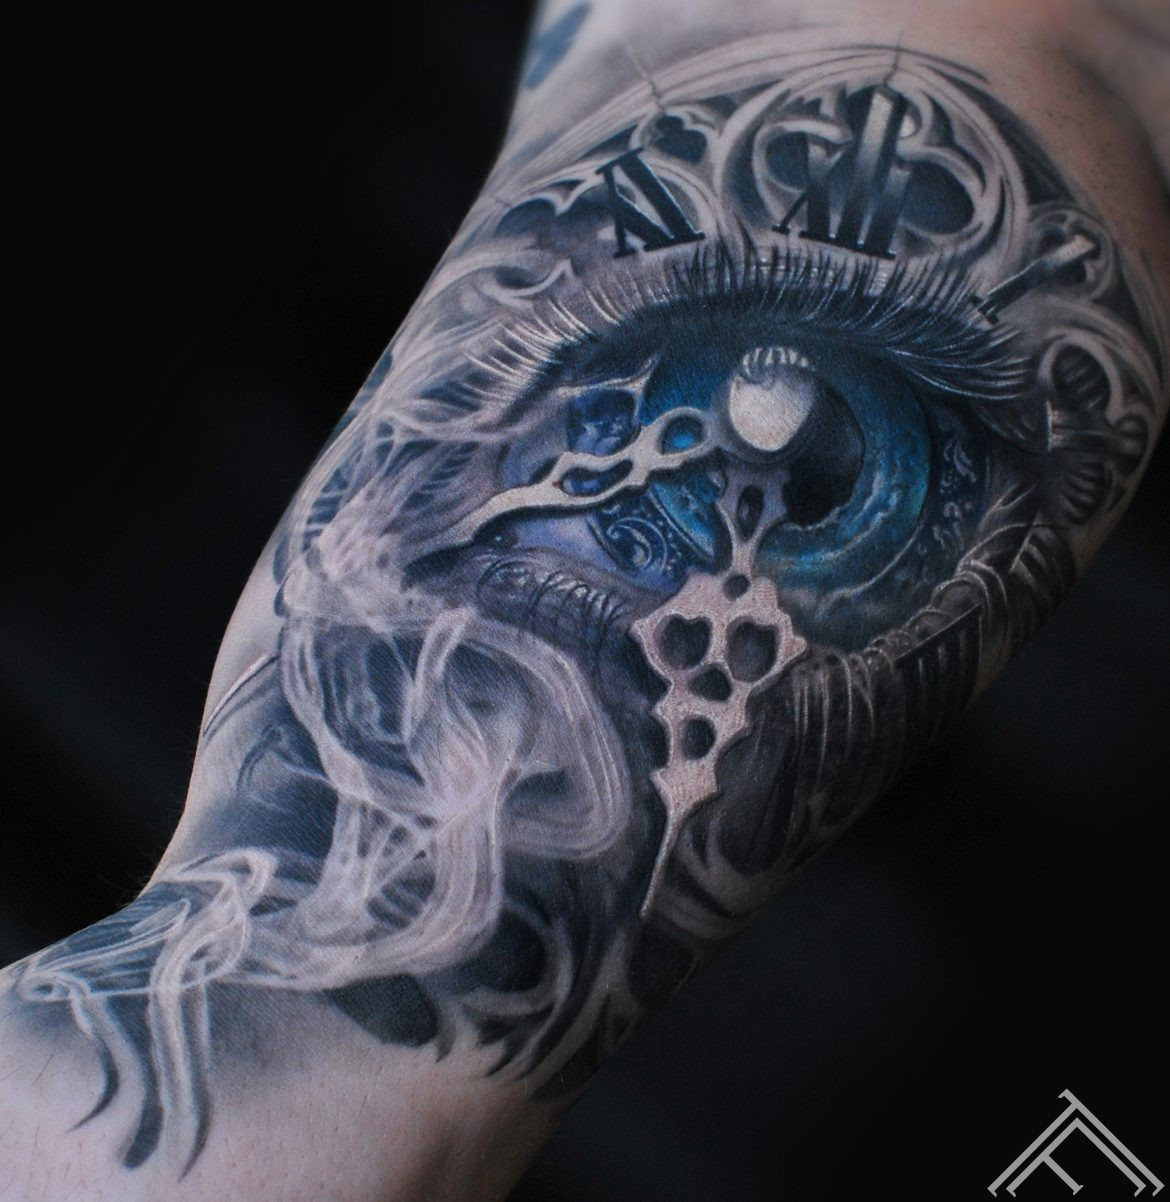 eye-clock-acs-pulkstenis-smoke-dumi-baroque-baroks-maksla-tattoofrequency-art-riga-marispavlo